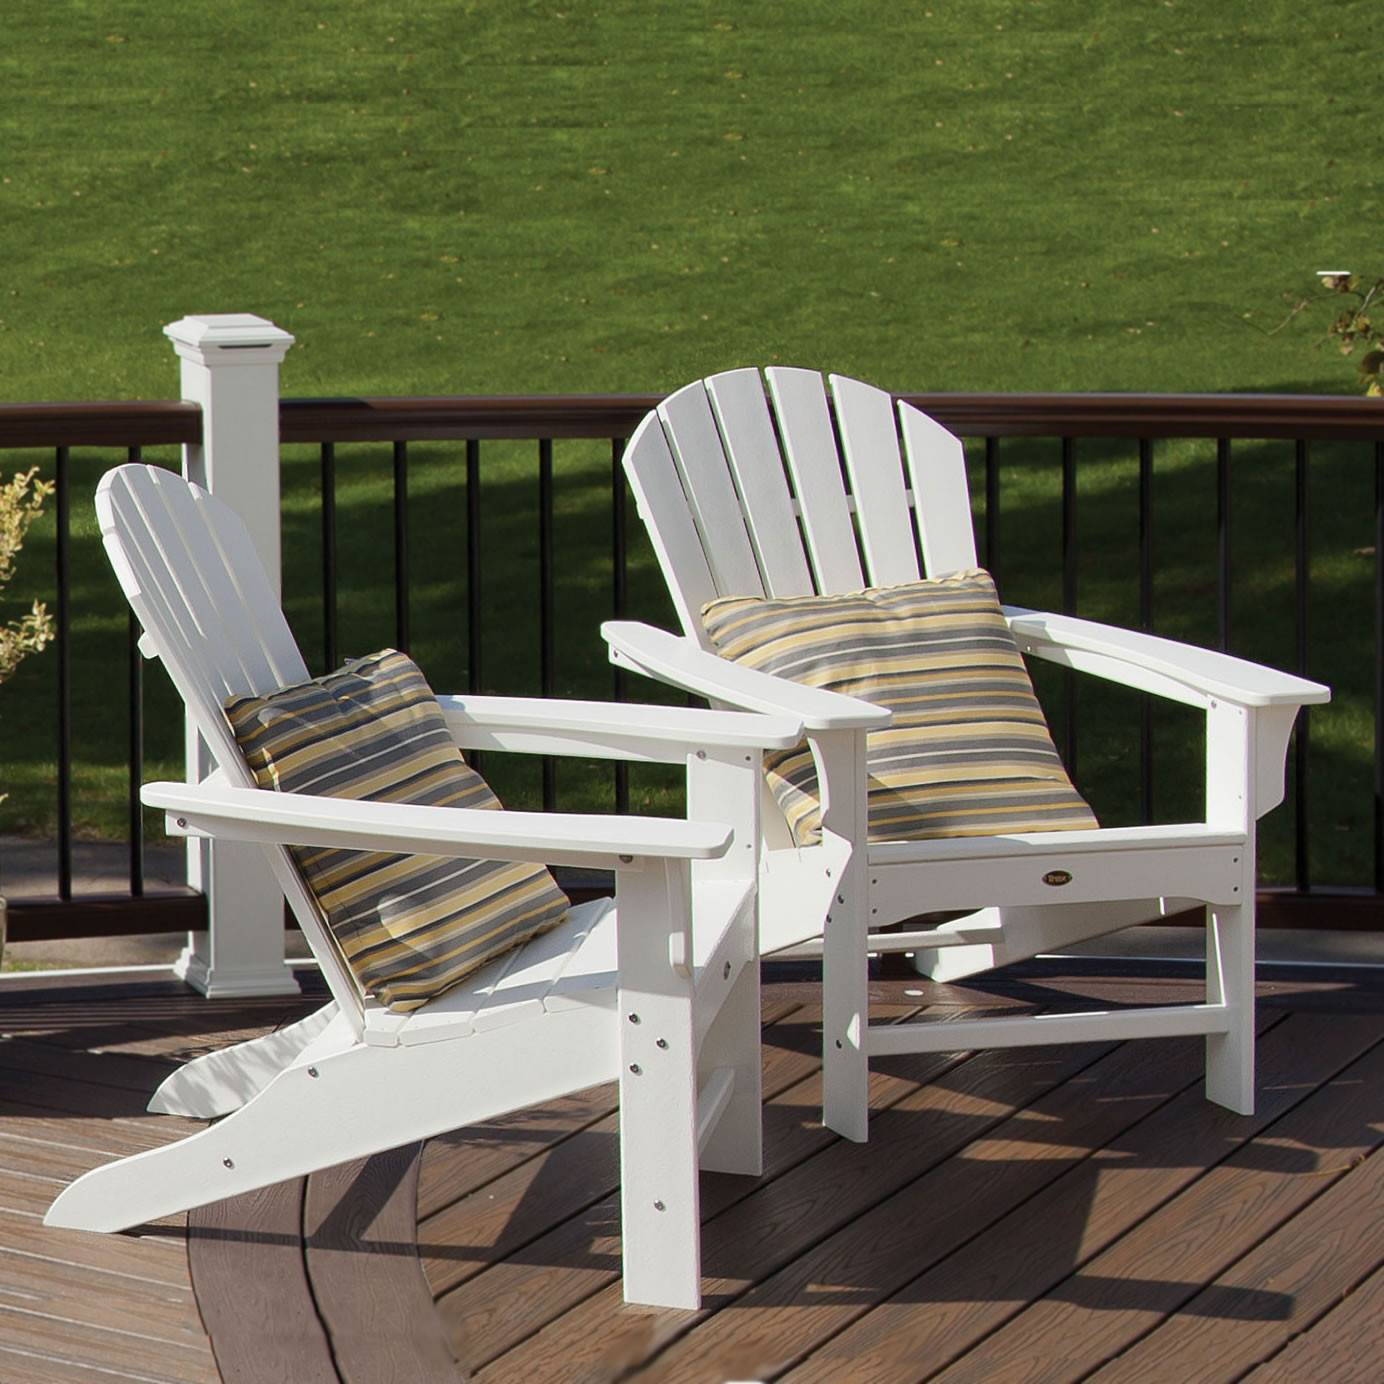 Trex Outdoor Furniture Adirondack Chairs - Garden Furniture Clearance Leasowe Castle